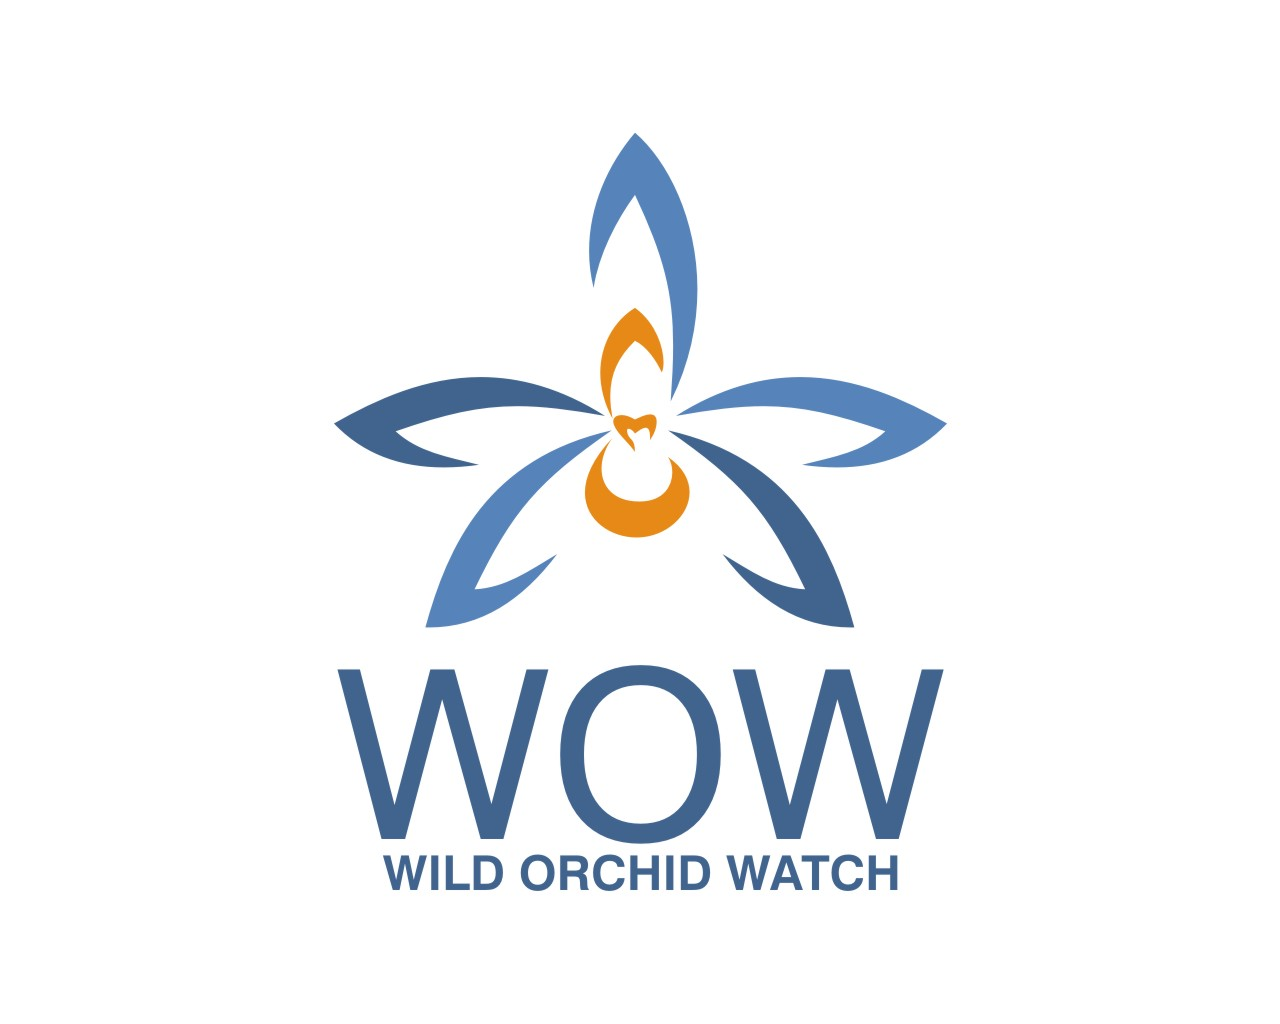 Wild Orchid Watch